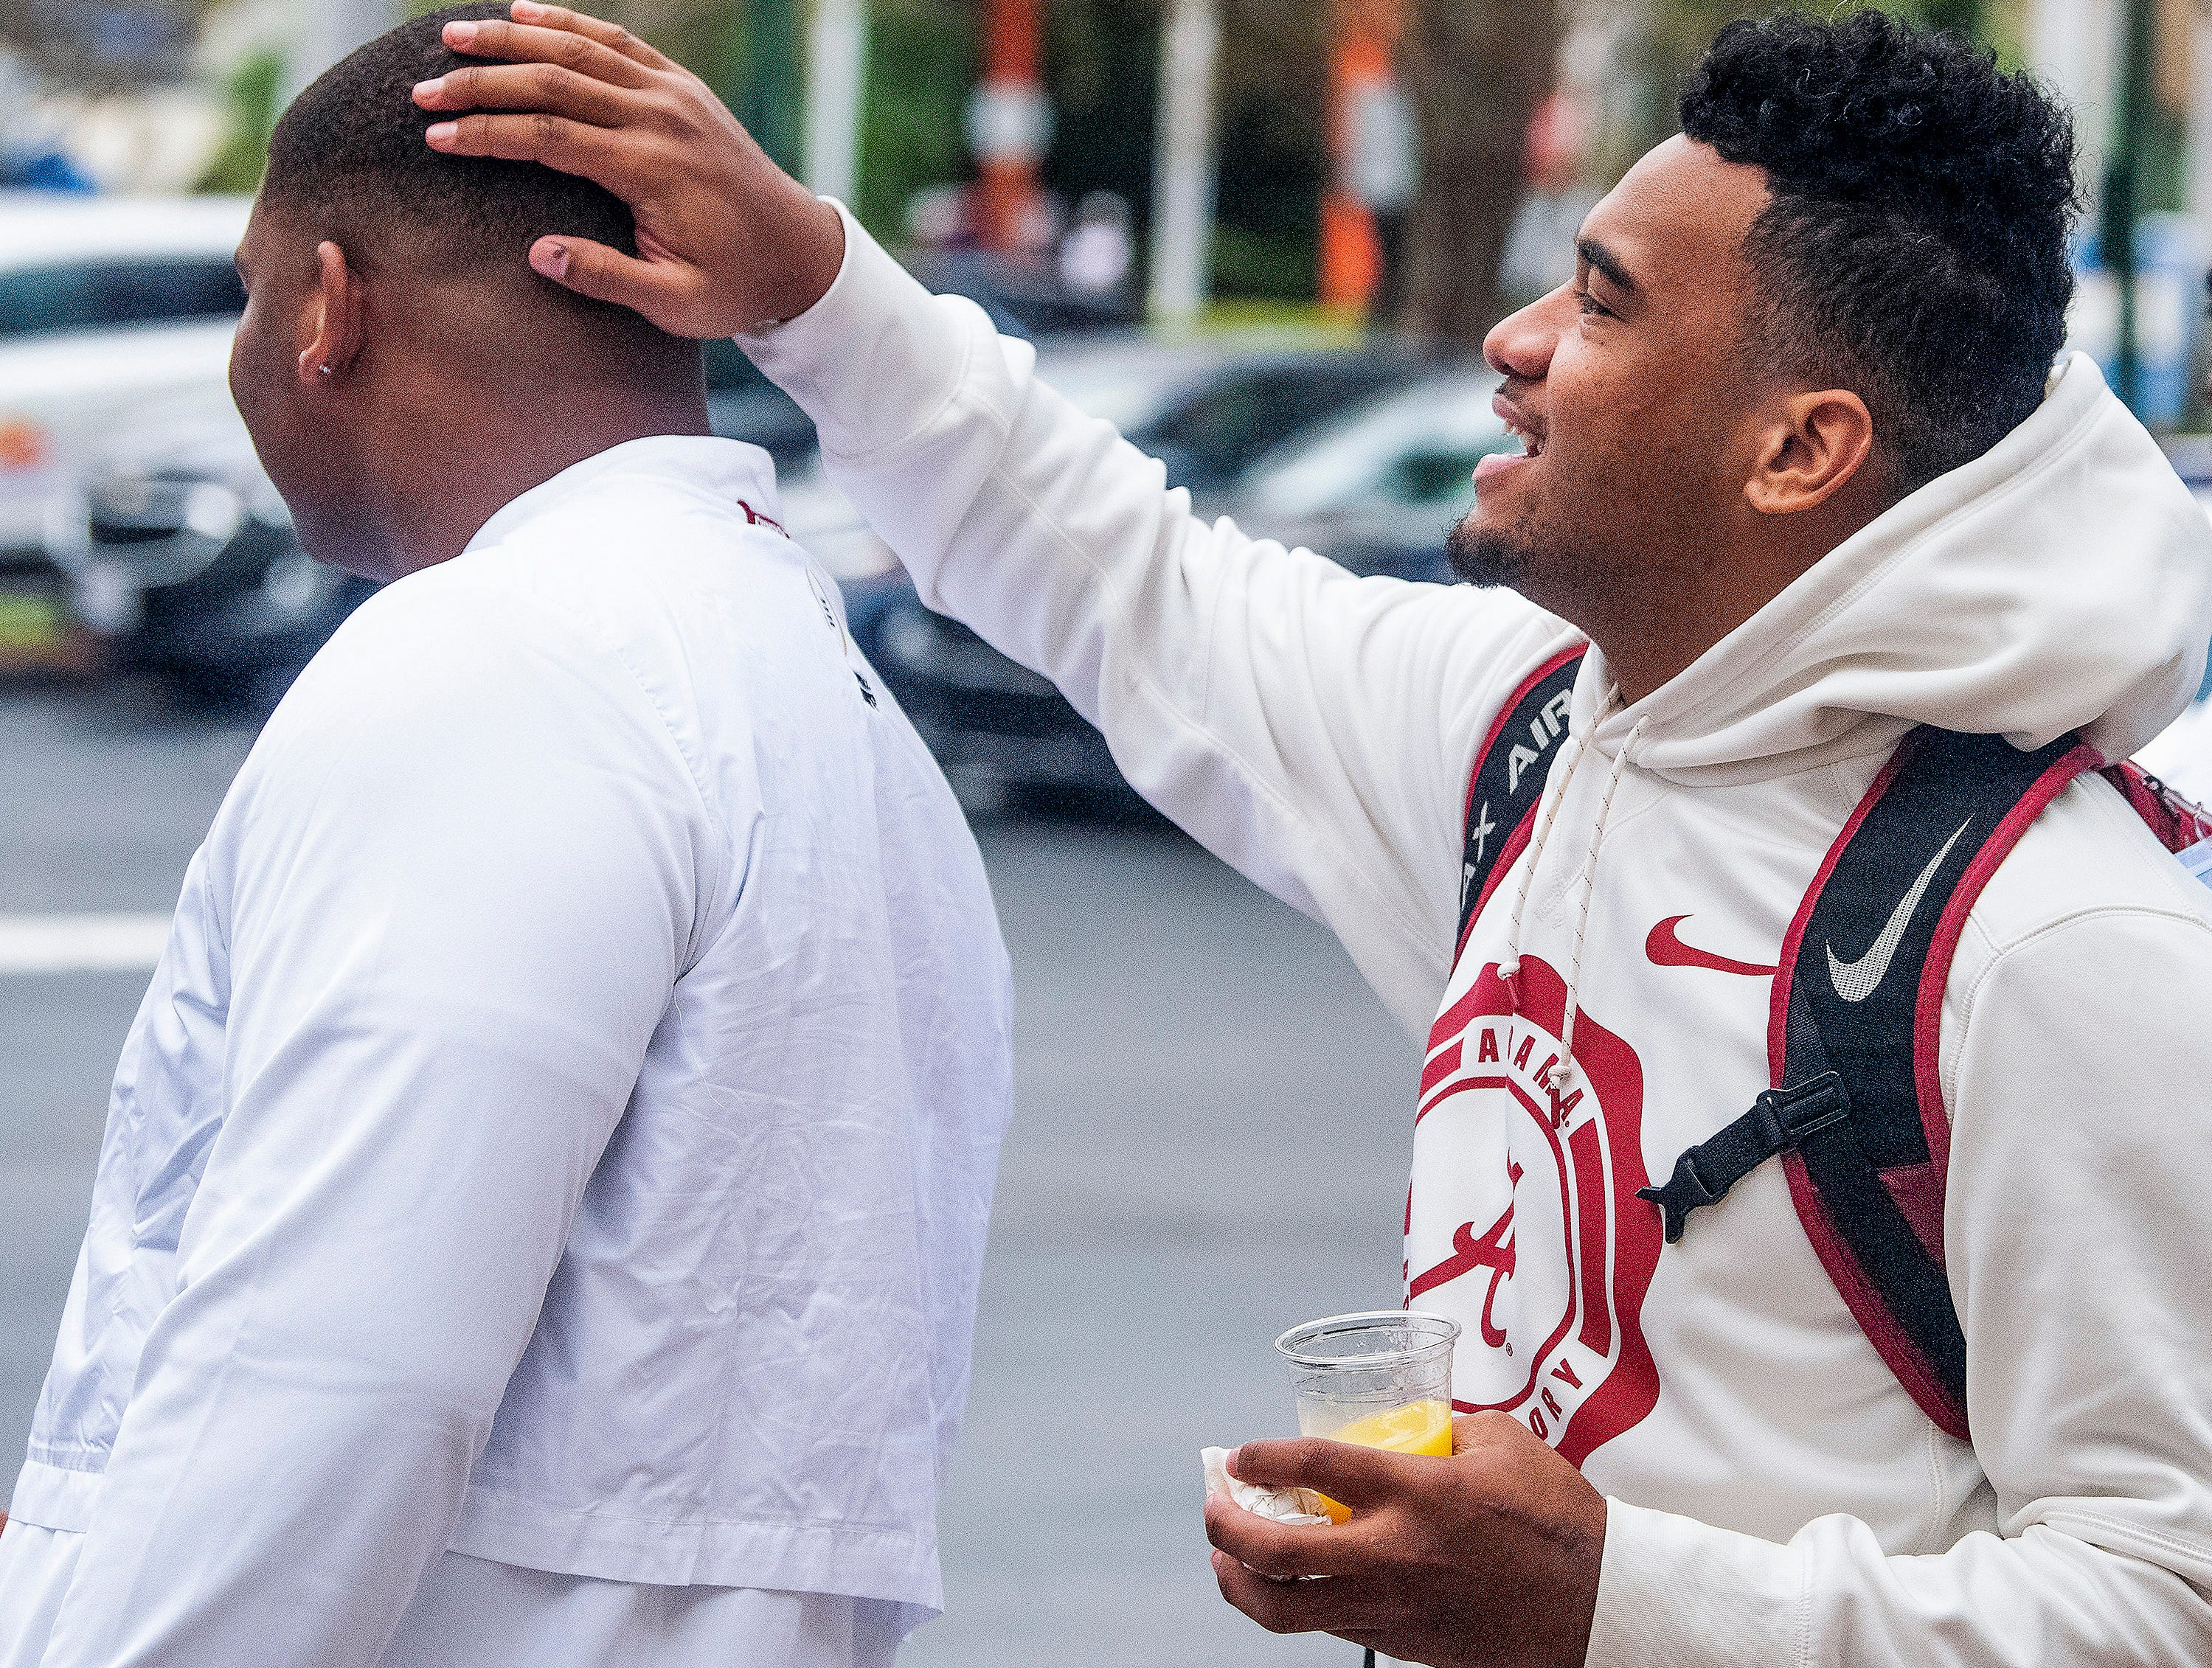 Alabama quarterback Tua Tagovailoa rubs the head of defensive lineman Quinnen Williams as they leave an Orange Bowl press conference in Fort Lauderdale, Fla., on Wednesday morning December 26, 2018.